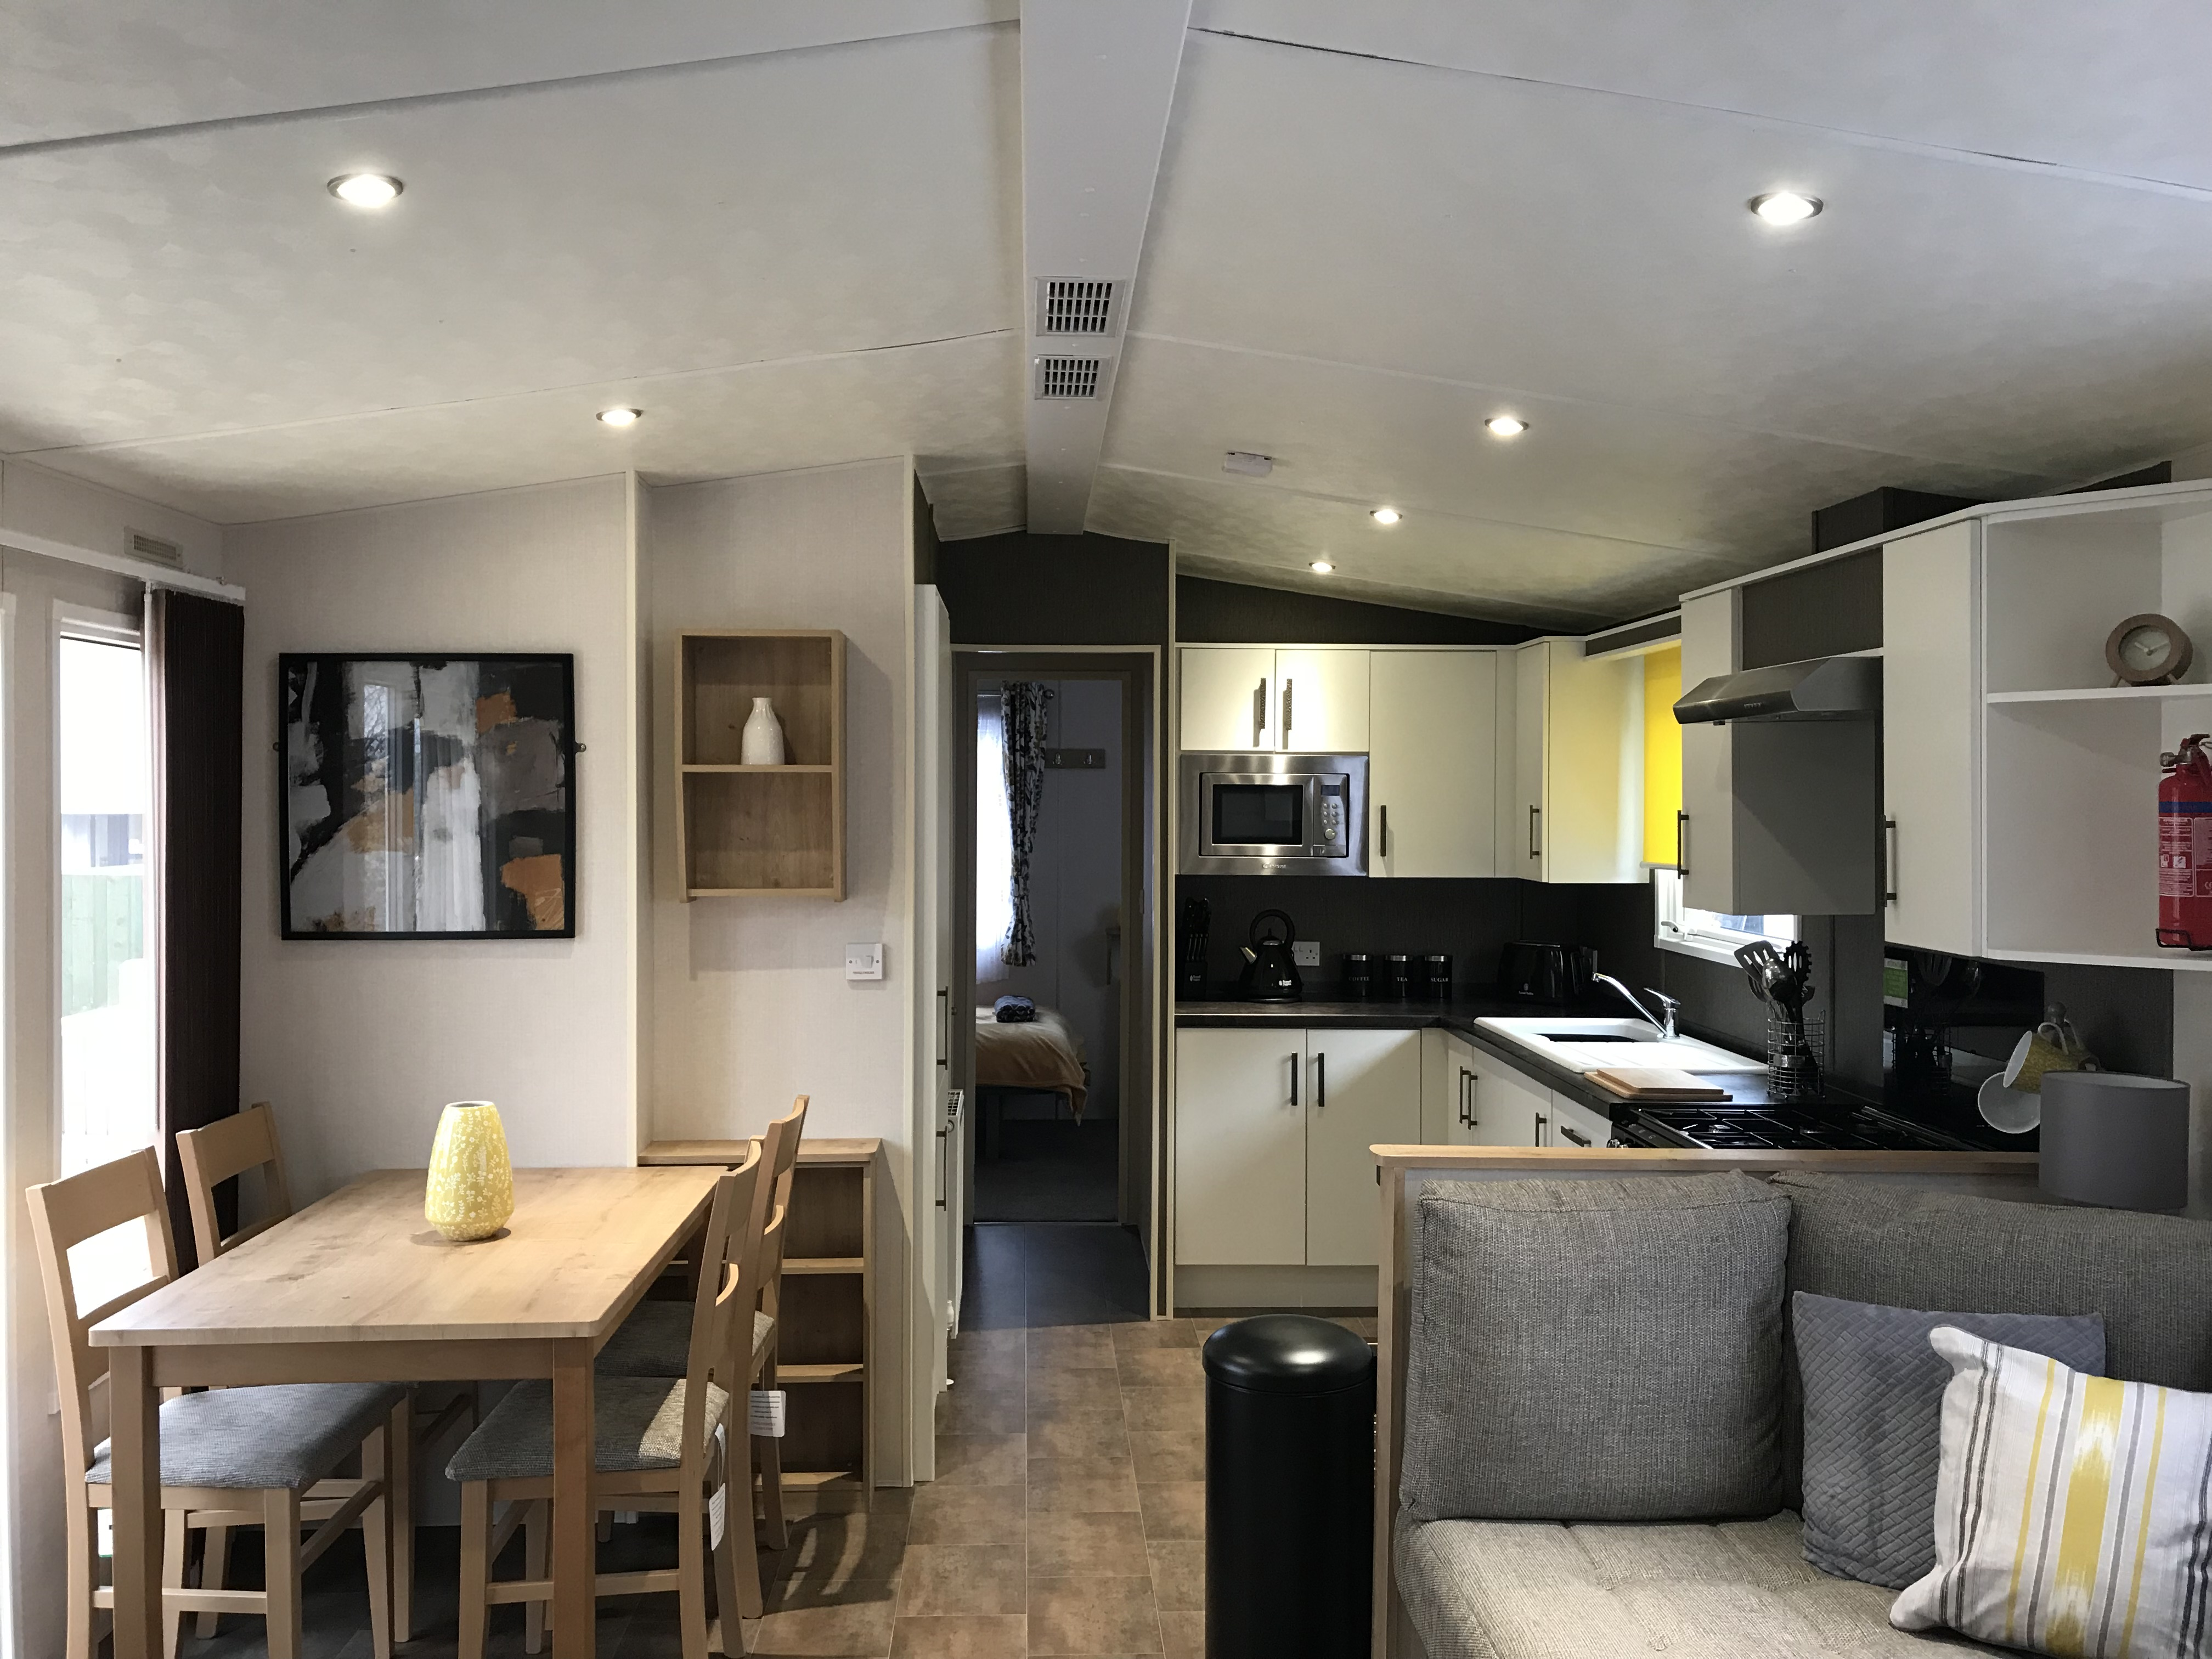 1. Open Plan Living/Dining and Kitchen